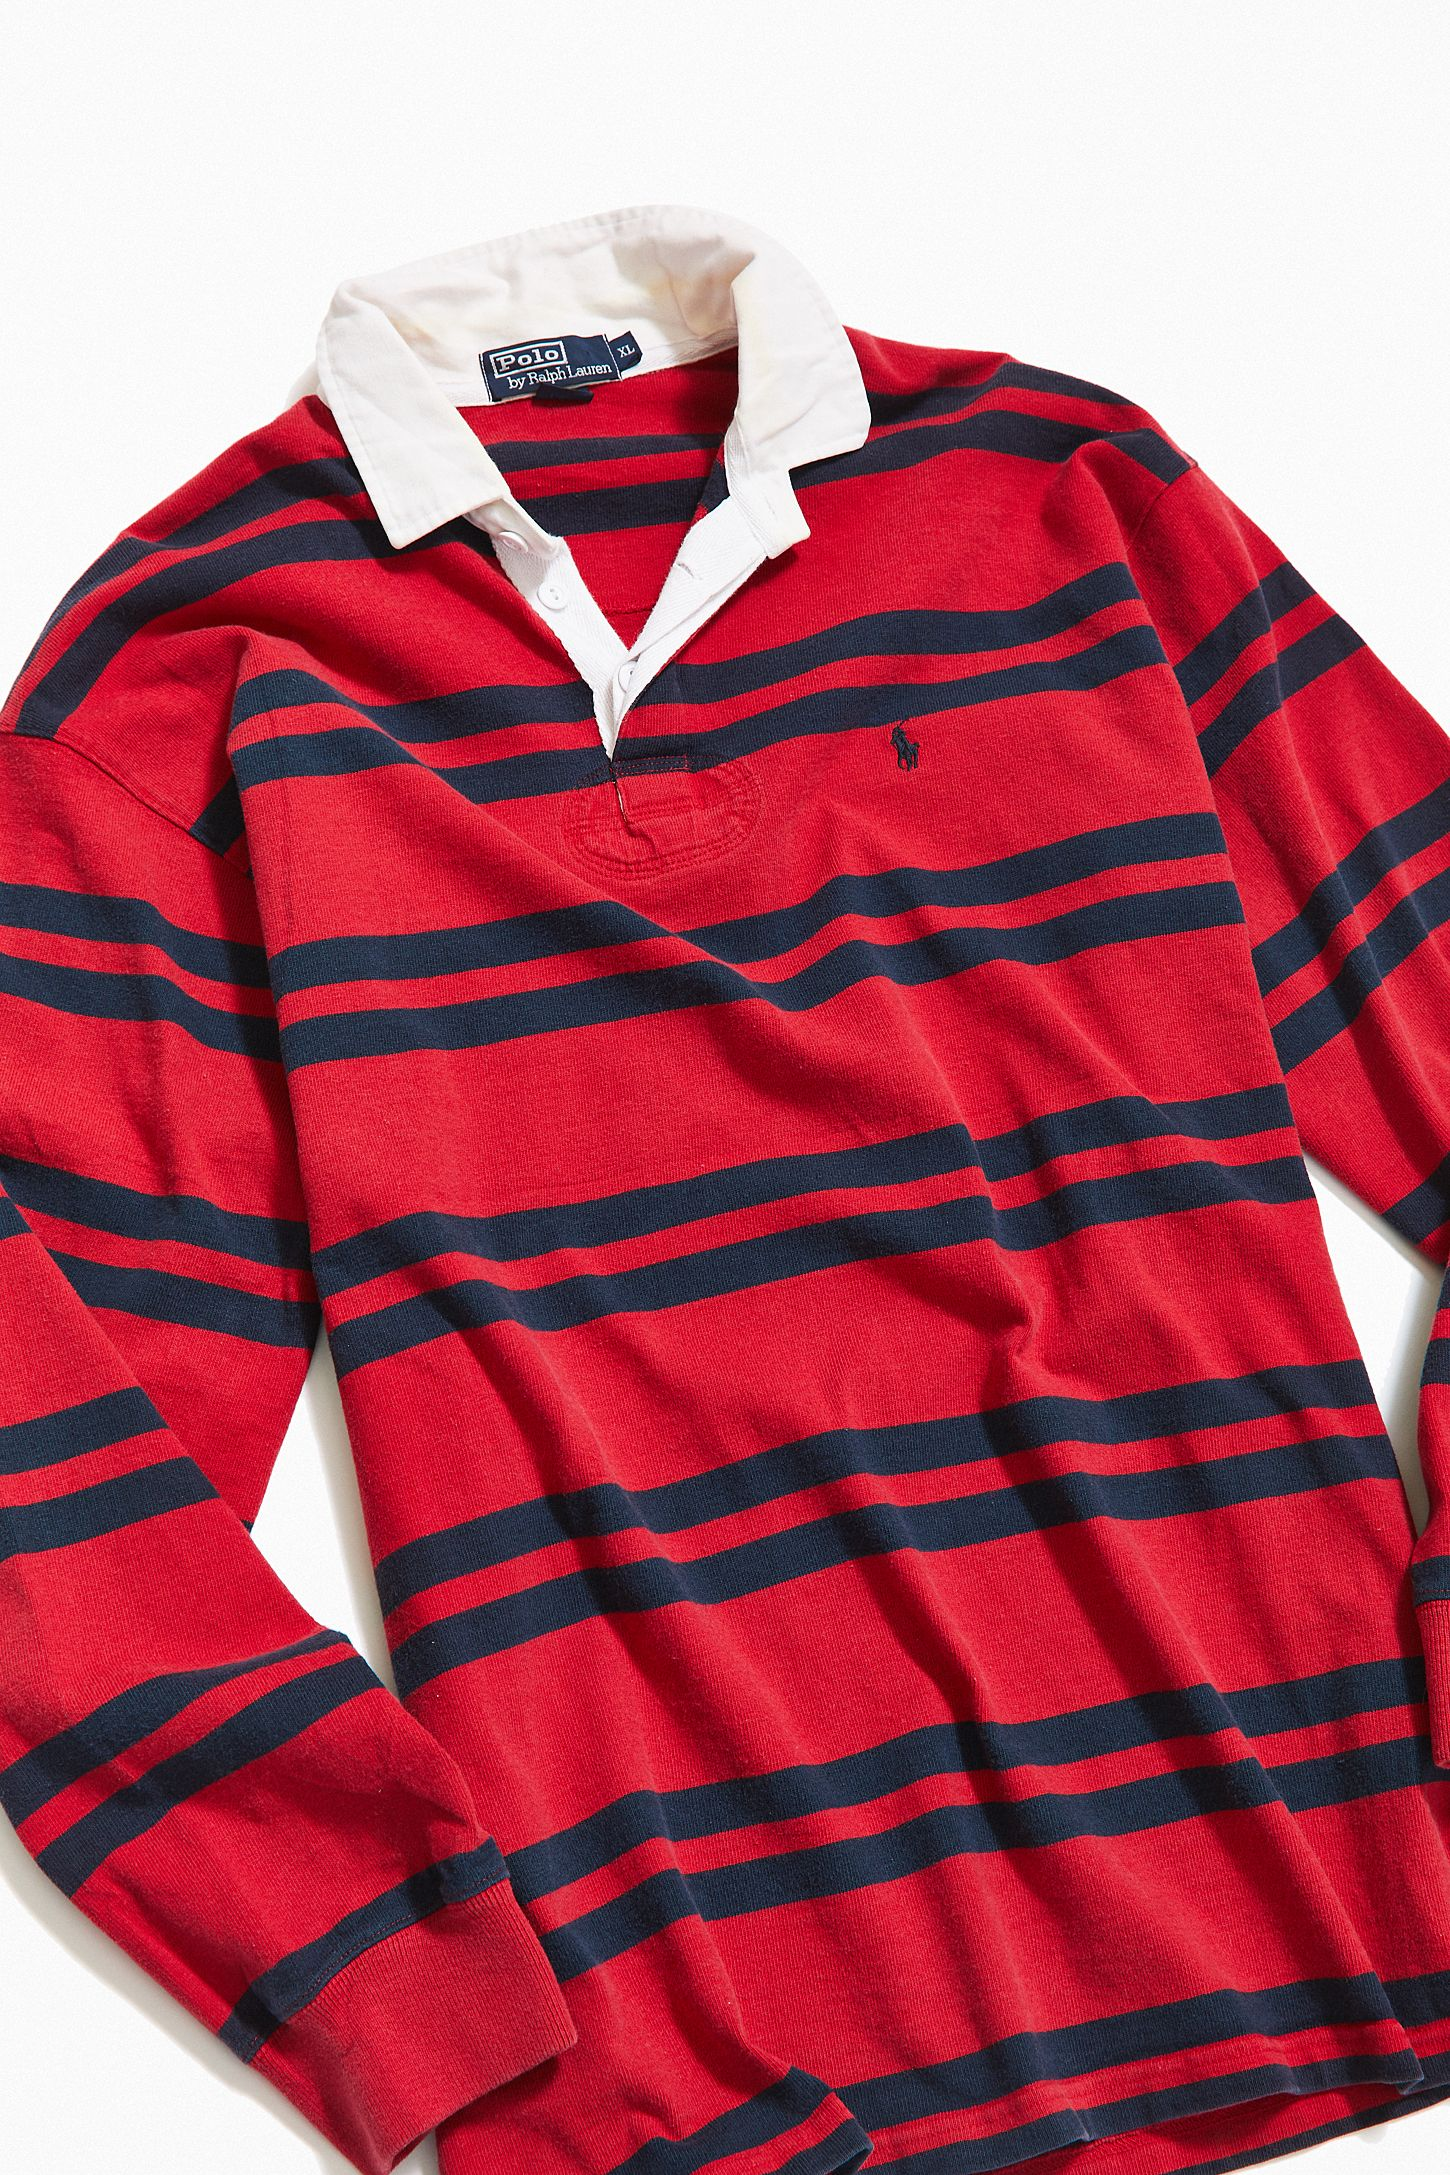 875764c717a Vintage Polo Ralph Lauren Multi-Stripe Rugby Shirt | Urban Outfitters